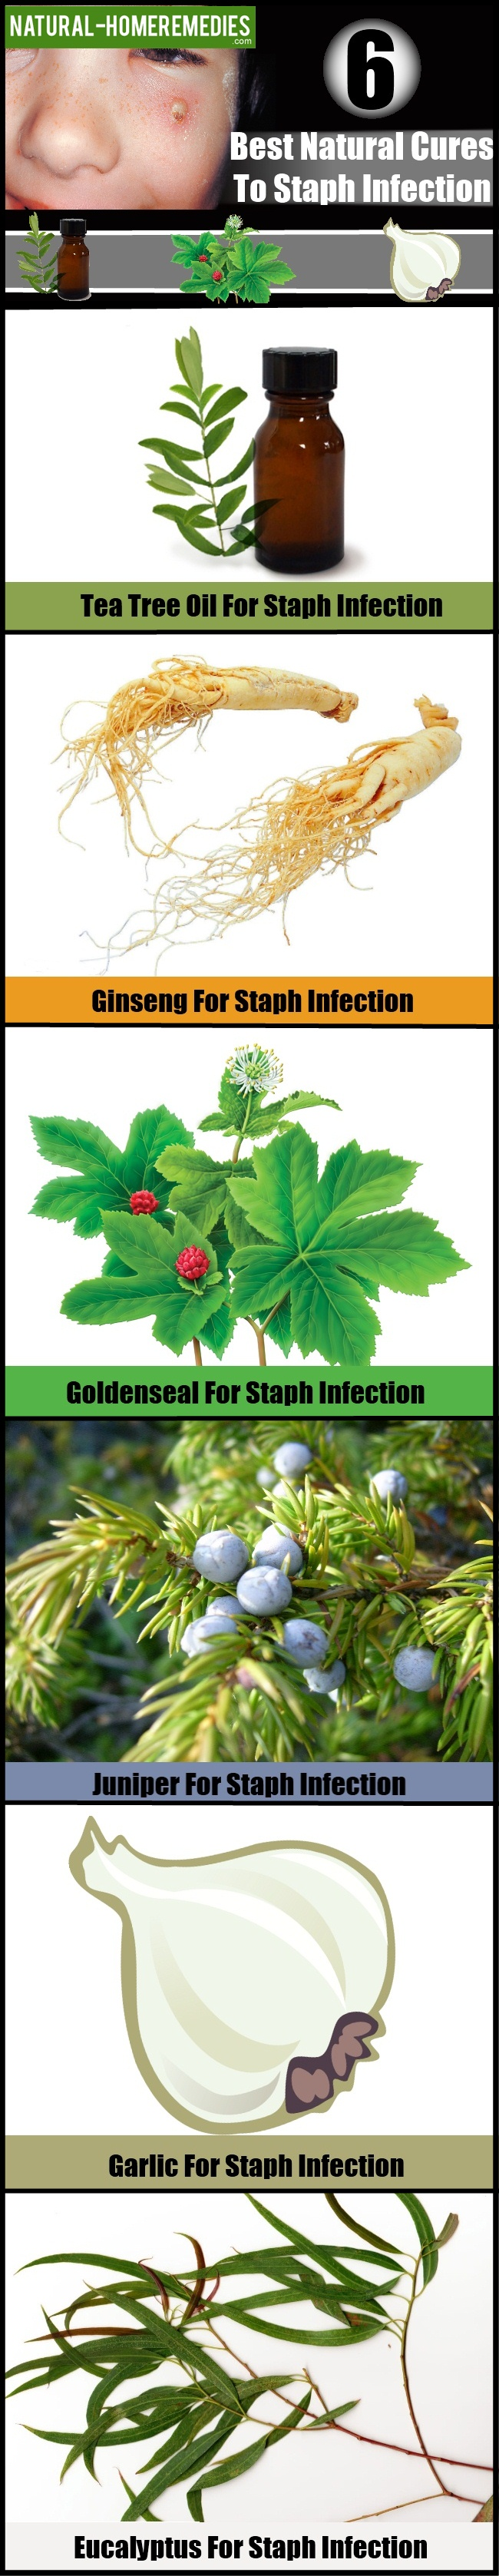 6 Best Natural Cures To Staph Infection